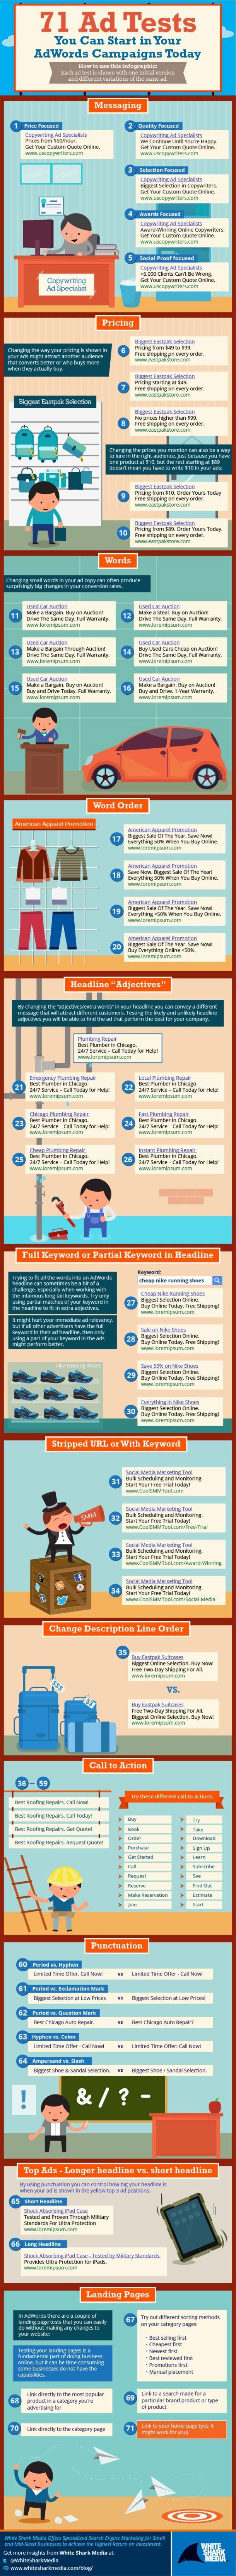 679 best google adwords images on pinterest online marketing 71 ad tests you can start in your adwords campaigns today infographic fandeluxe Choice Image